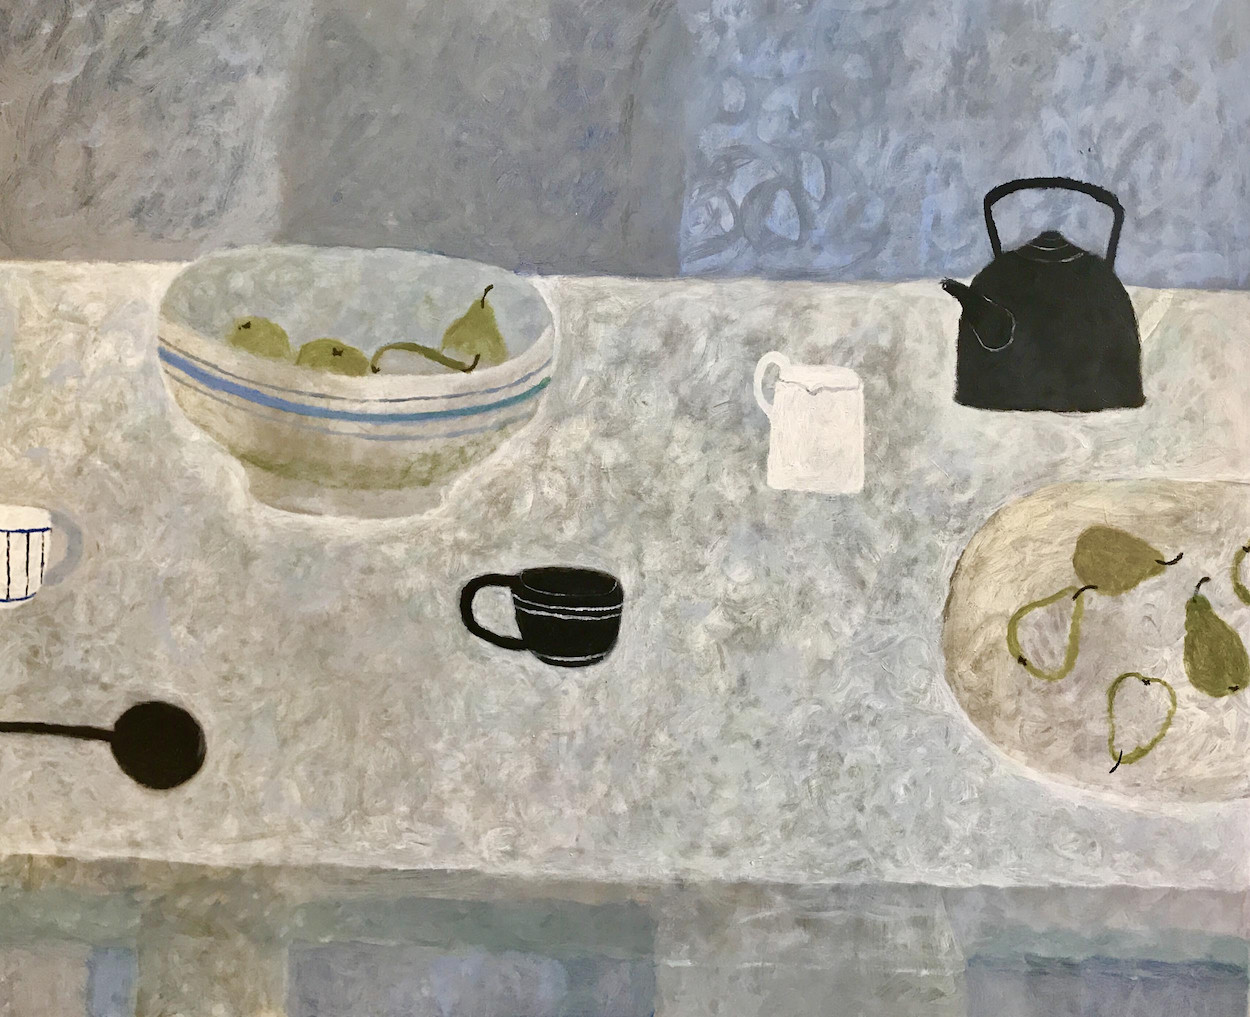 Sarah Bowman, The Black Stove Kettle, 2017, White Space Gallery